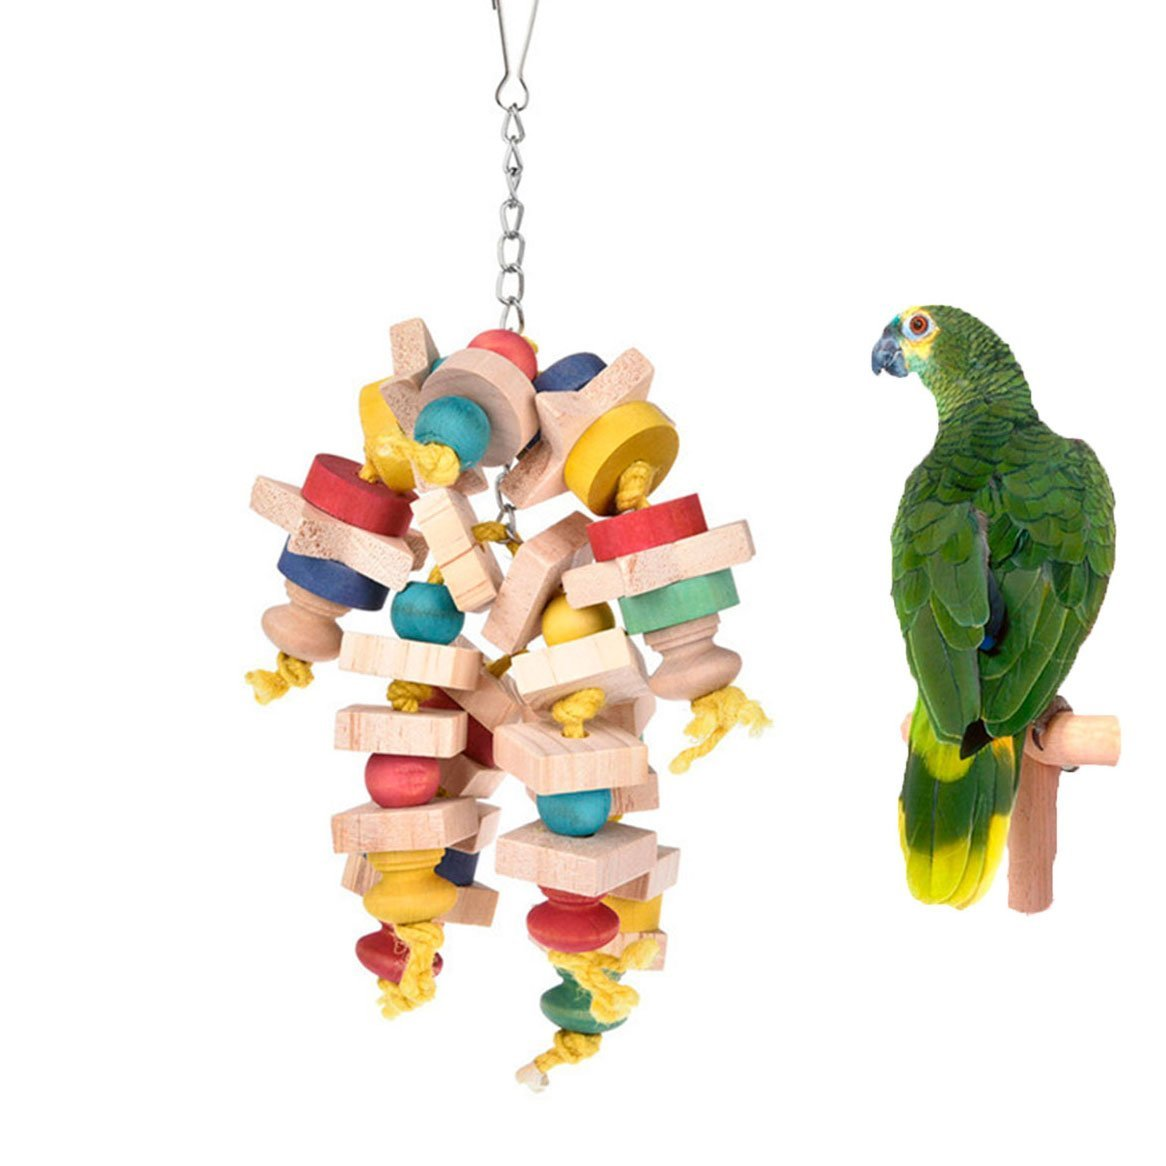 Keersi Large Bird Chew Toy Natual Wood Blocks for Bird African Grey Cockatoo Amazon Eclectus Macaw Parakeet Cockatiel Conure Lovebirds Finch Canary Budgie Cage